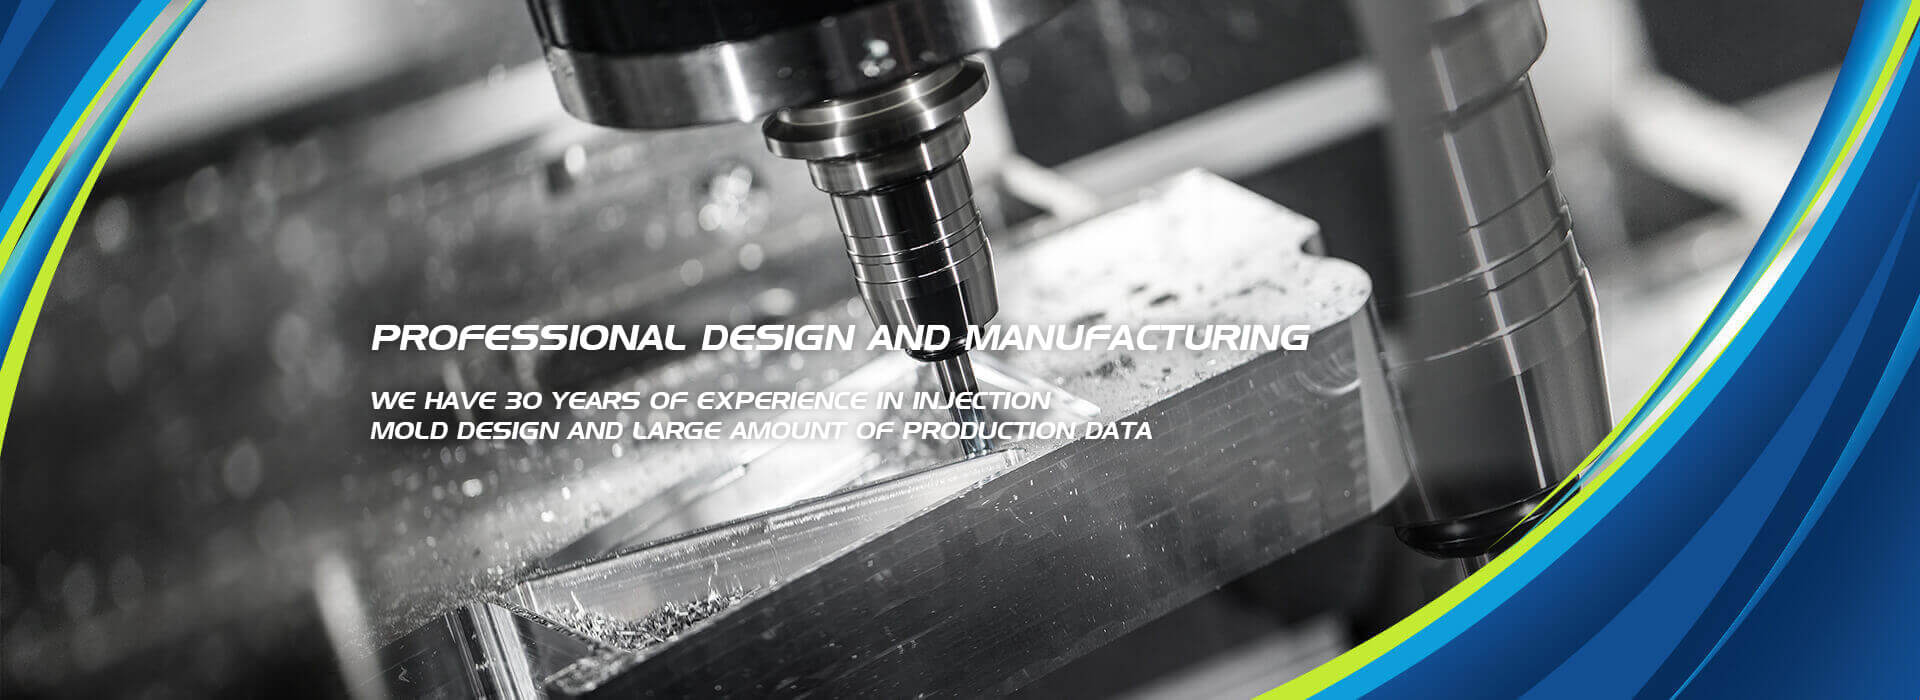 Professional Design And Manufacturing